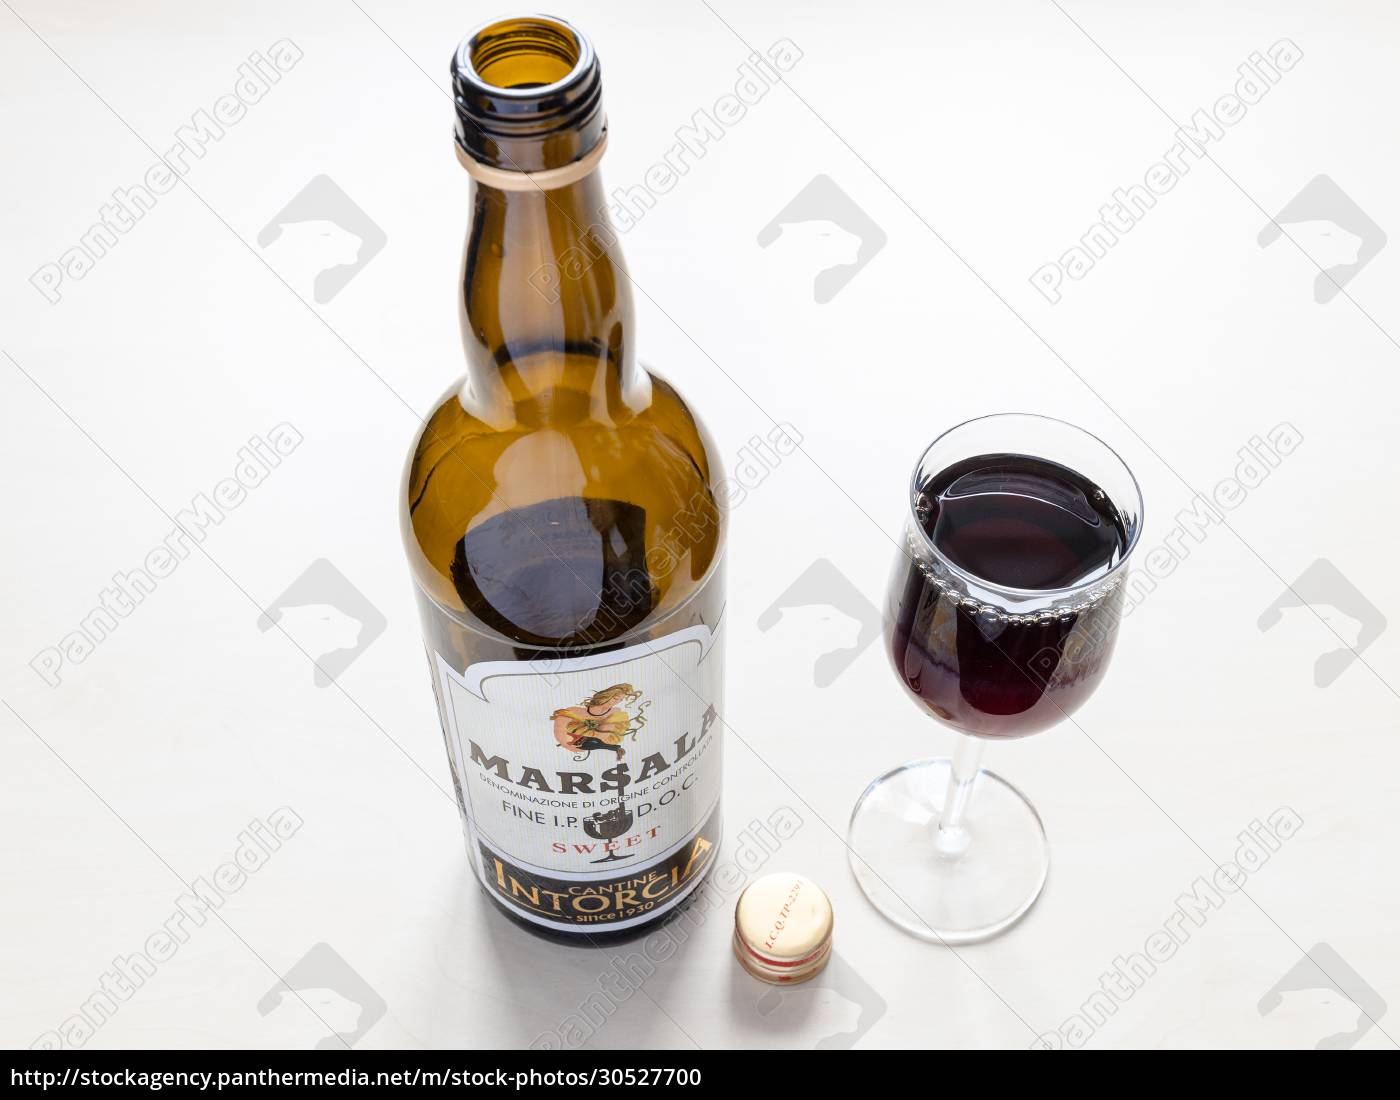 wine, glass, and, open, bottle, of - 30527700